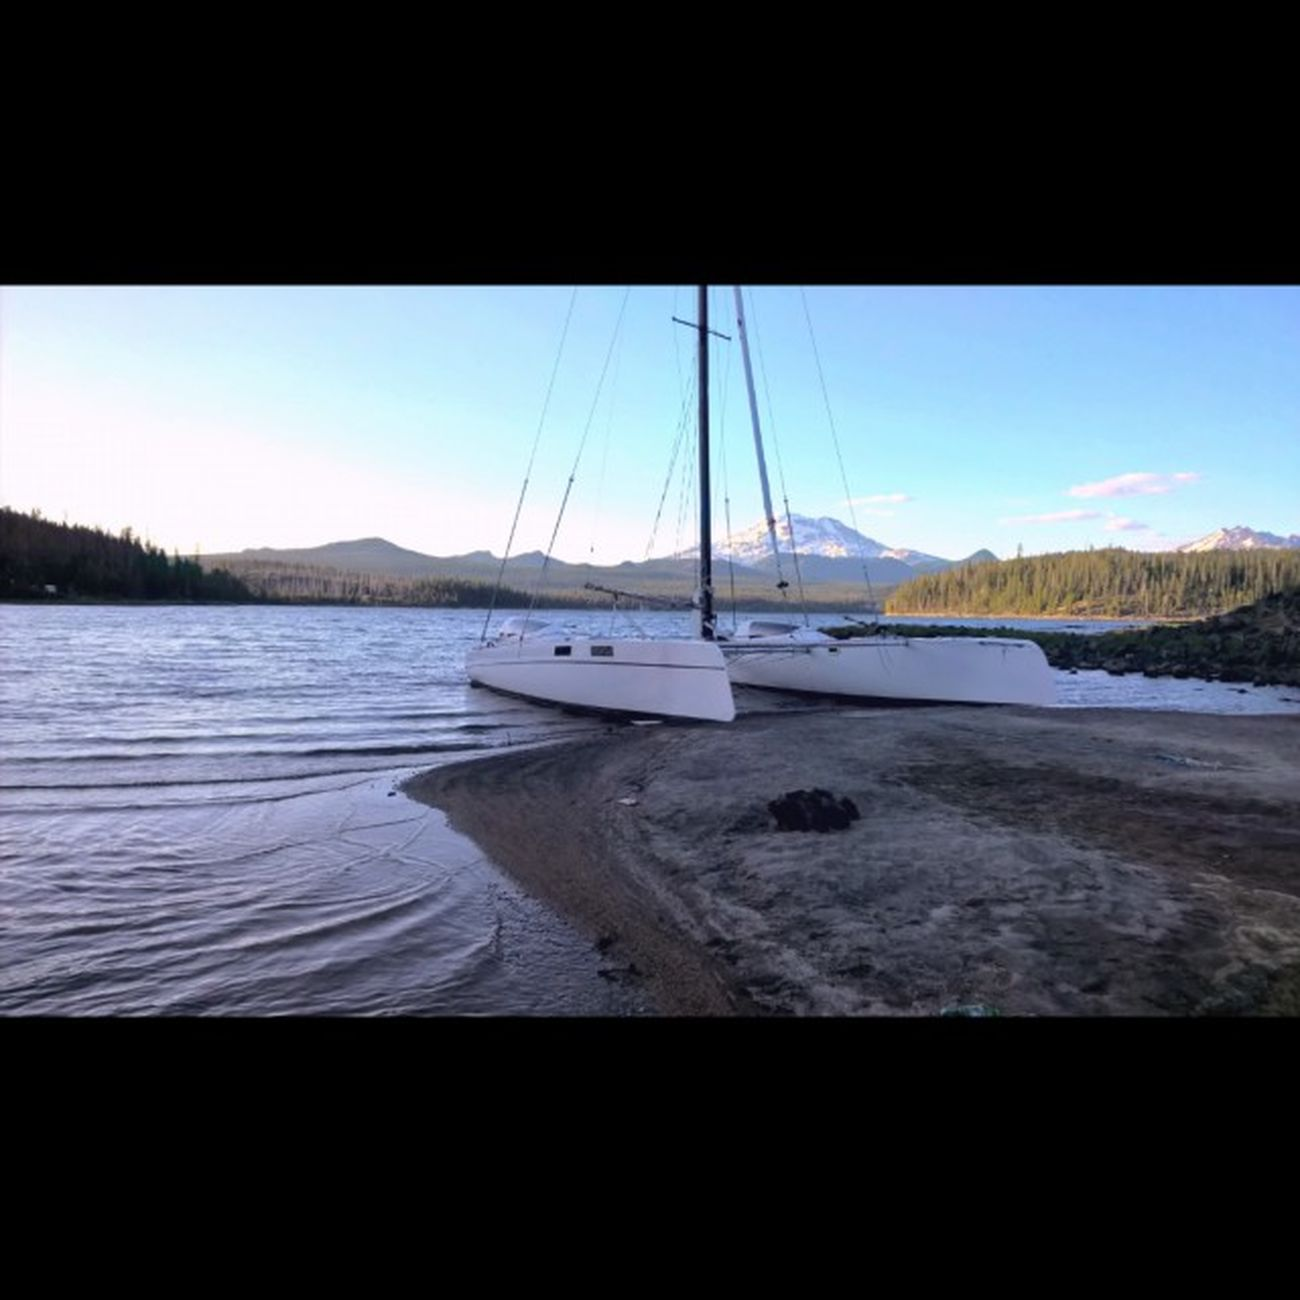 Haha I thought this was a really sick Catamaran ... Boat Cascades Cascadelakes ShotOnMyLumia  Follow LumiaLove Love Southsisters Me New Getoutside Greettheoutdoors Theoutbound Lumiagraphy Bend Visitbend Exploregon PNW Thepnwlife PNWonderland Westcoast_captures Landscapes Summertime